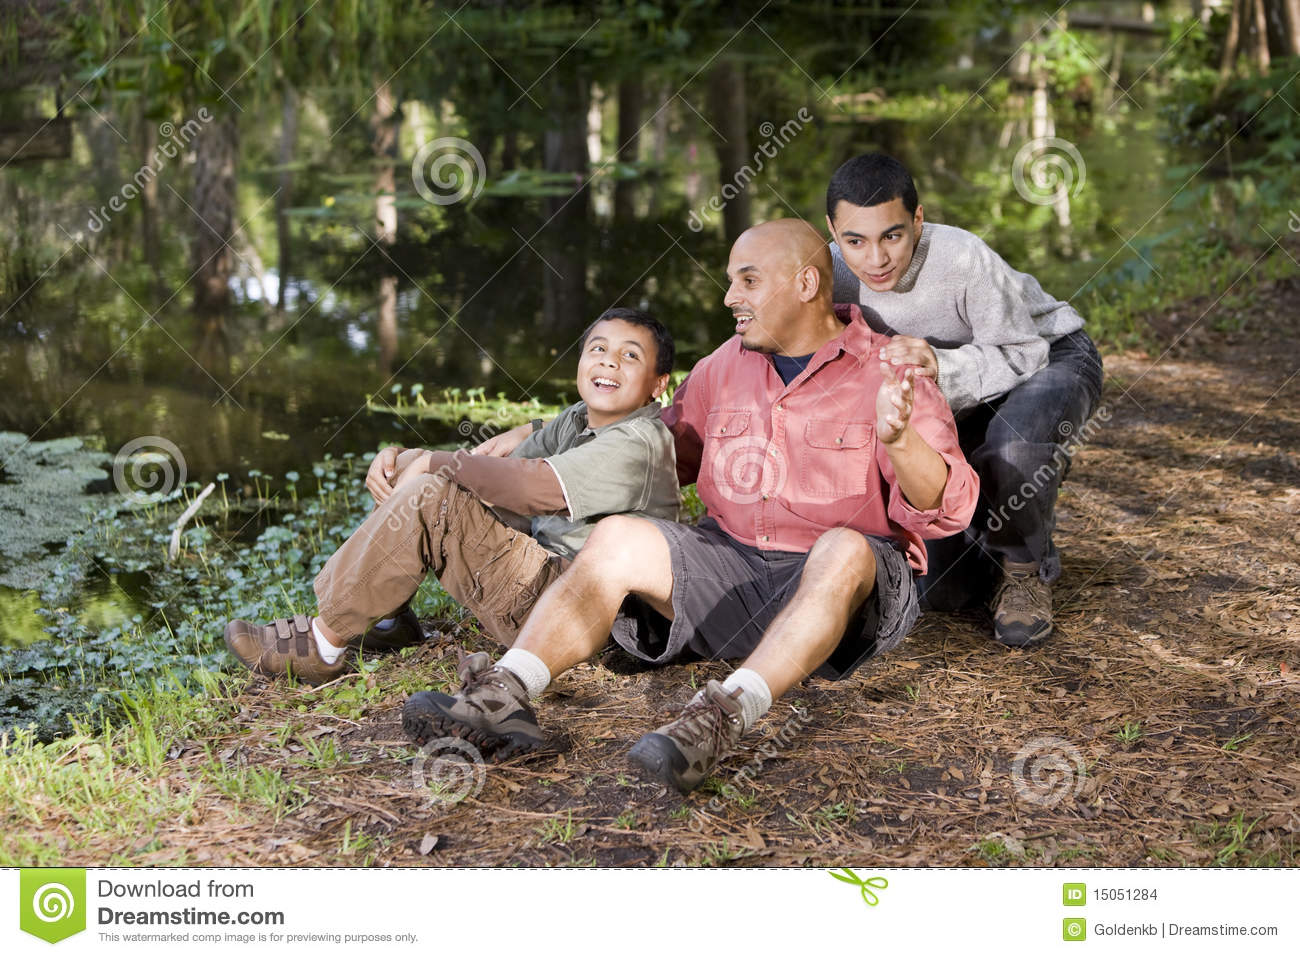 hispanic single men in green camp Meet hispanic/latino marine men and find your true love at militarycupidcom sign up today and browse profiles of hispanic/latino marine men for free.